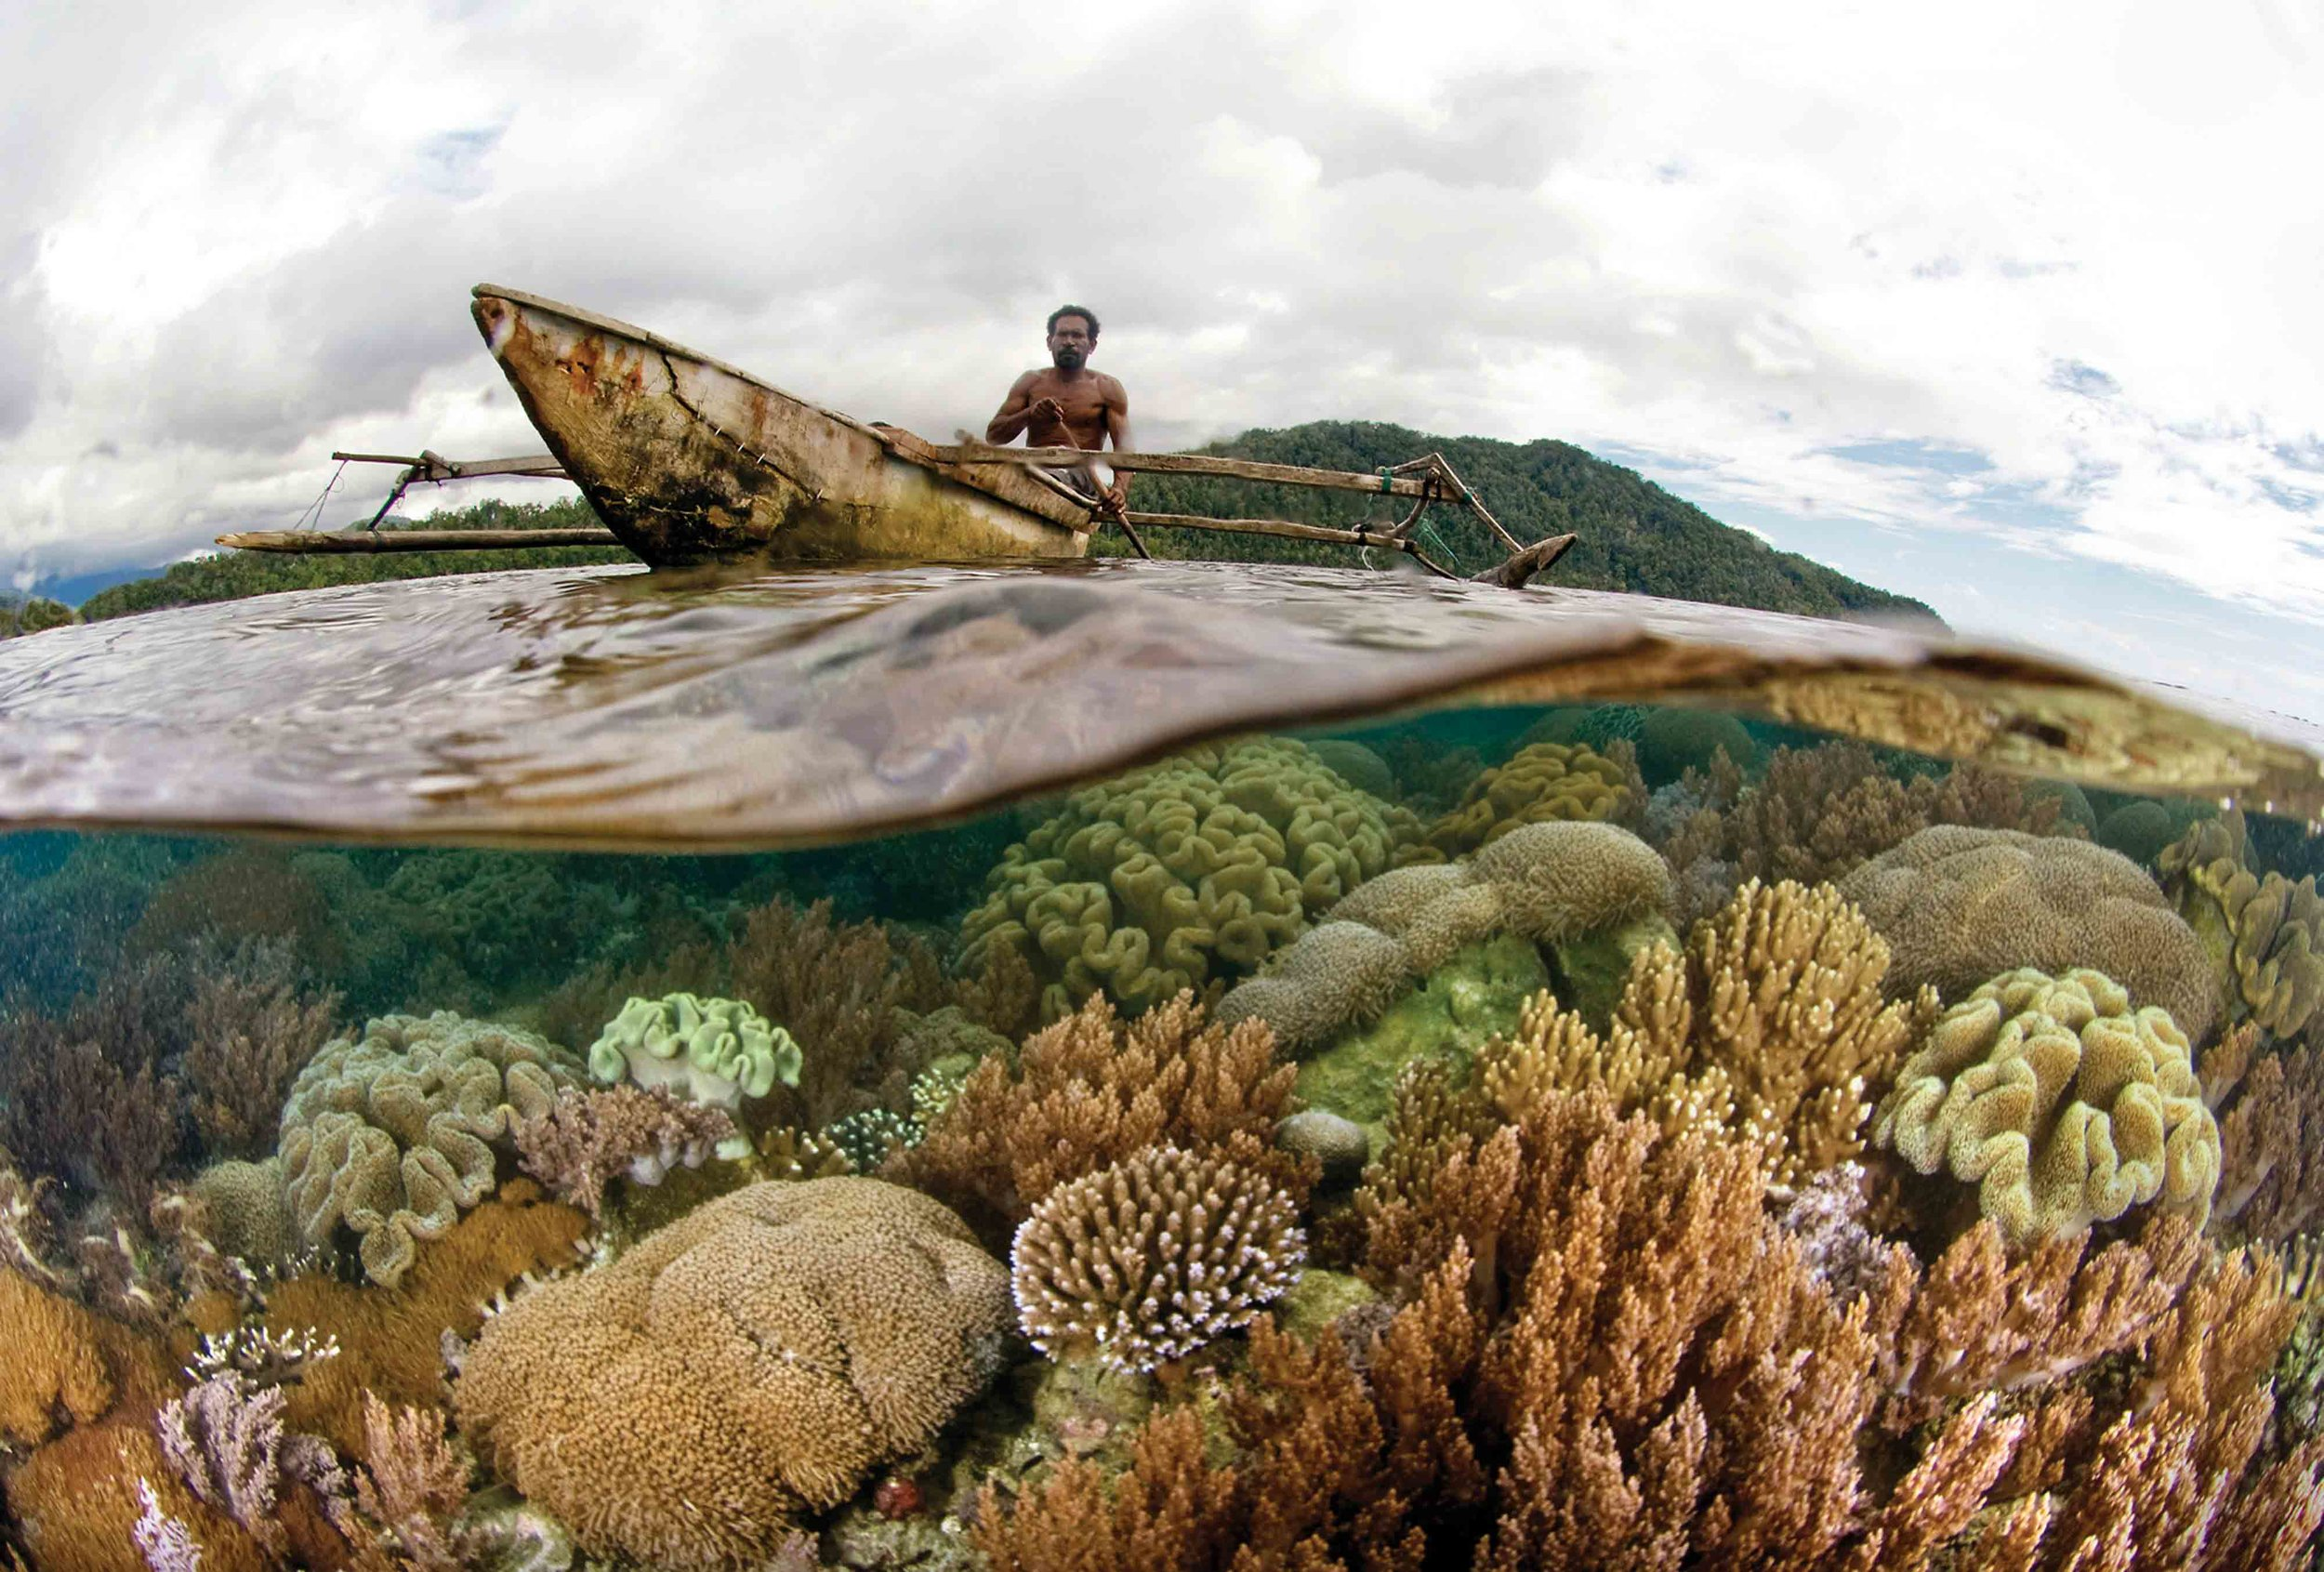 Aware of the importance of reef habitats to their fisheries, local communities in Raja Ampat have begun to patrol their waters against cyanide and blast fishing. This community patrolman keeps watch in his dugout canoe near their island of Batanta, Raja Ampat. © CI/ Sterling Zumbrunn